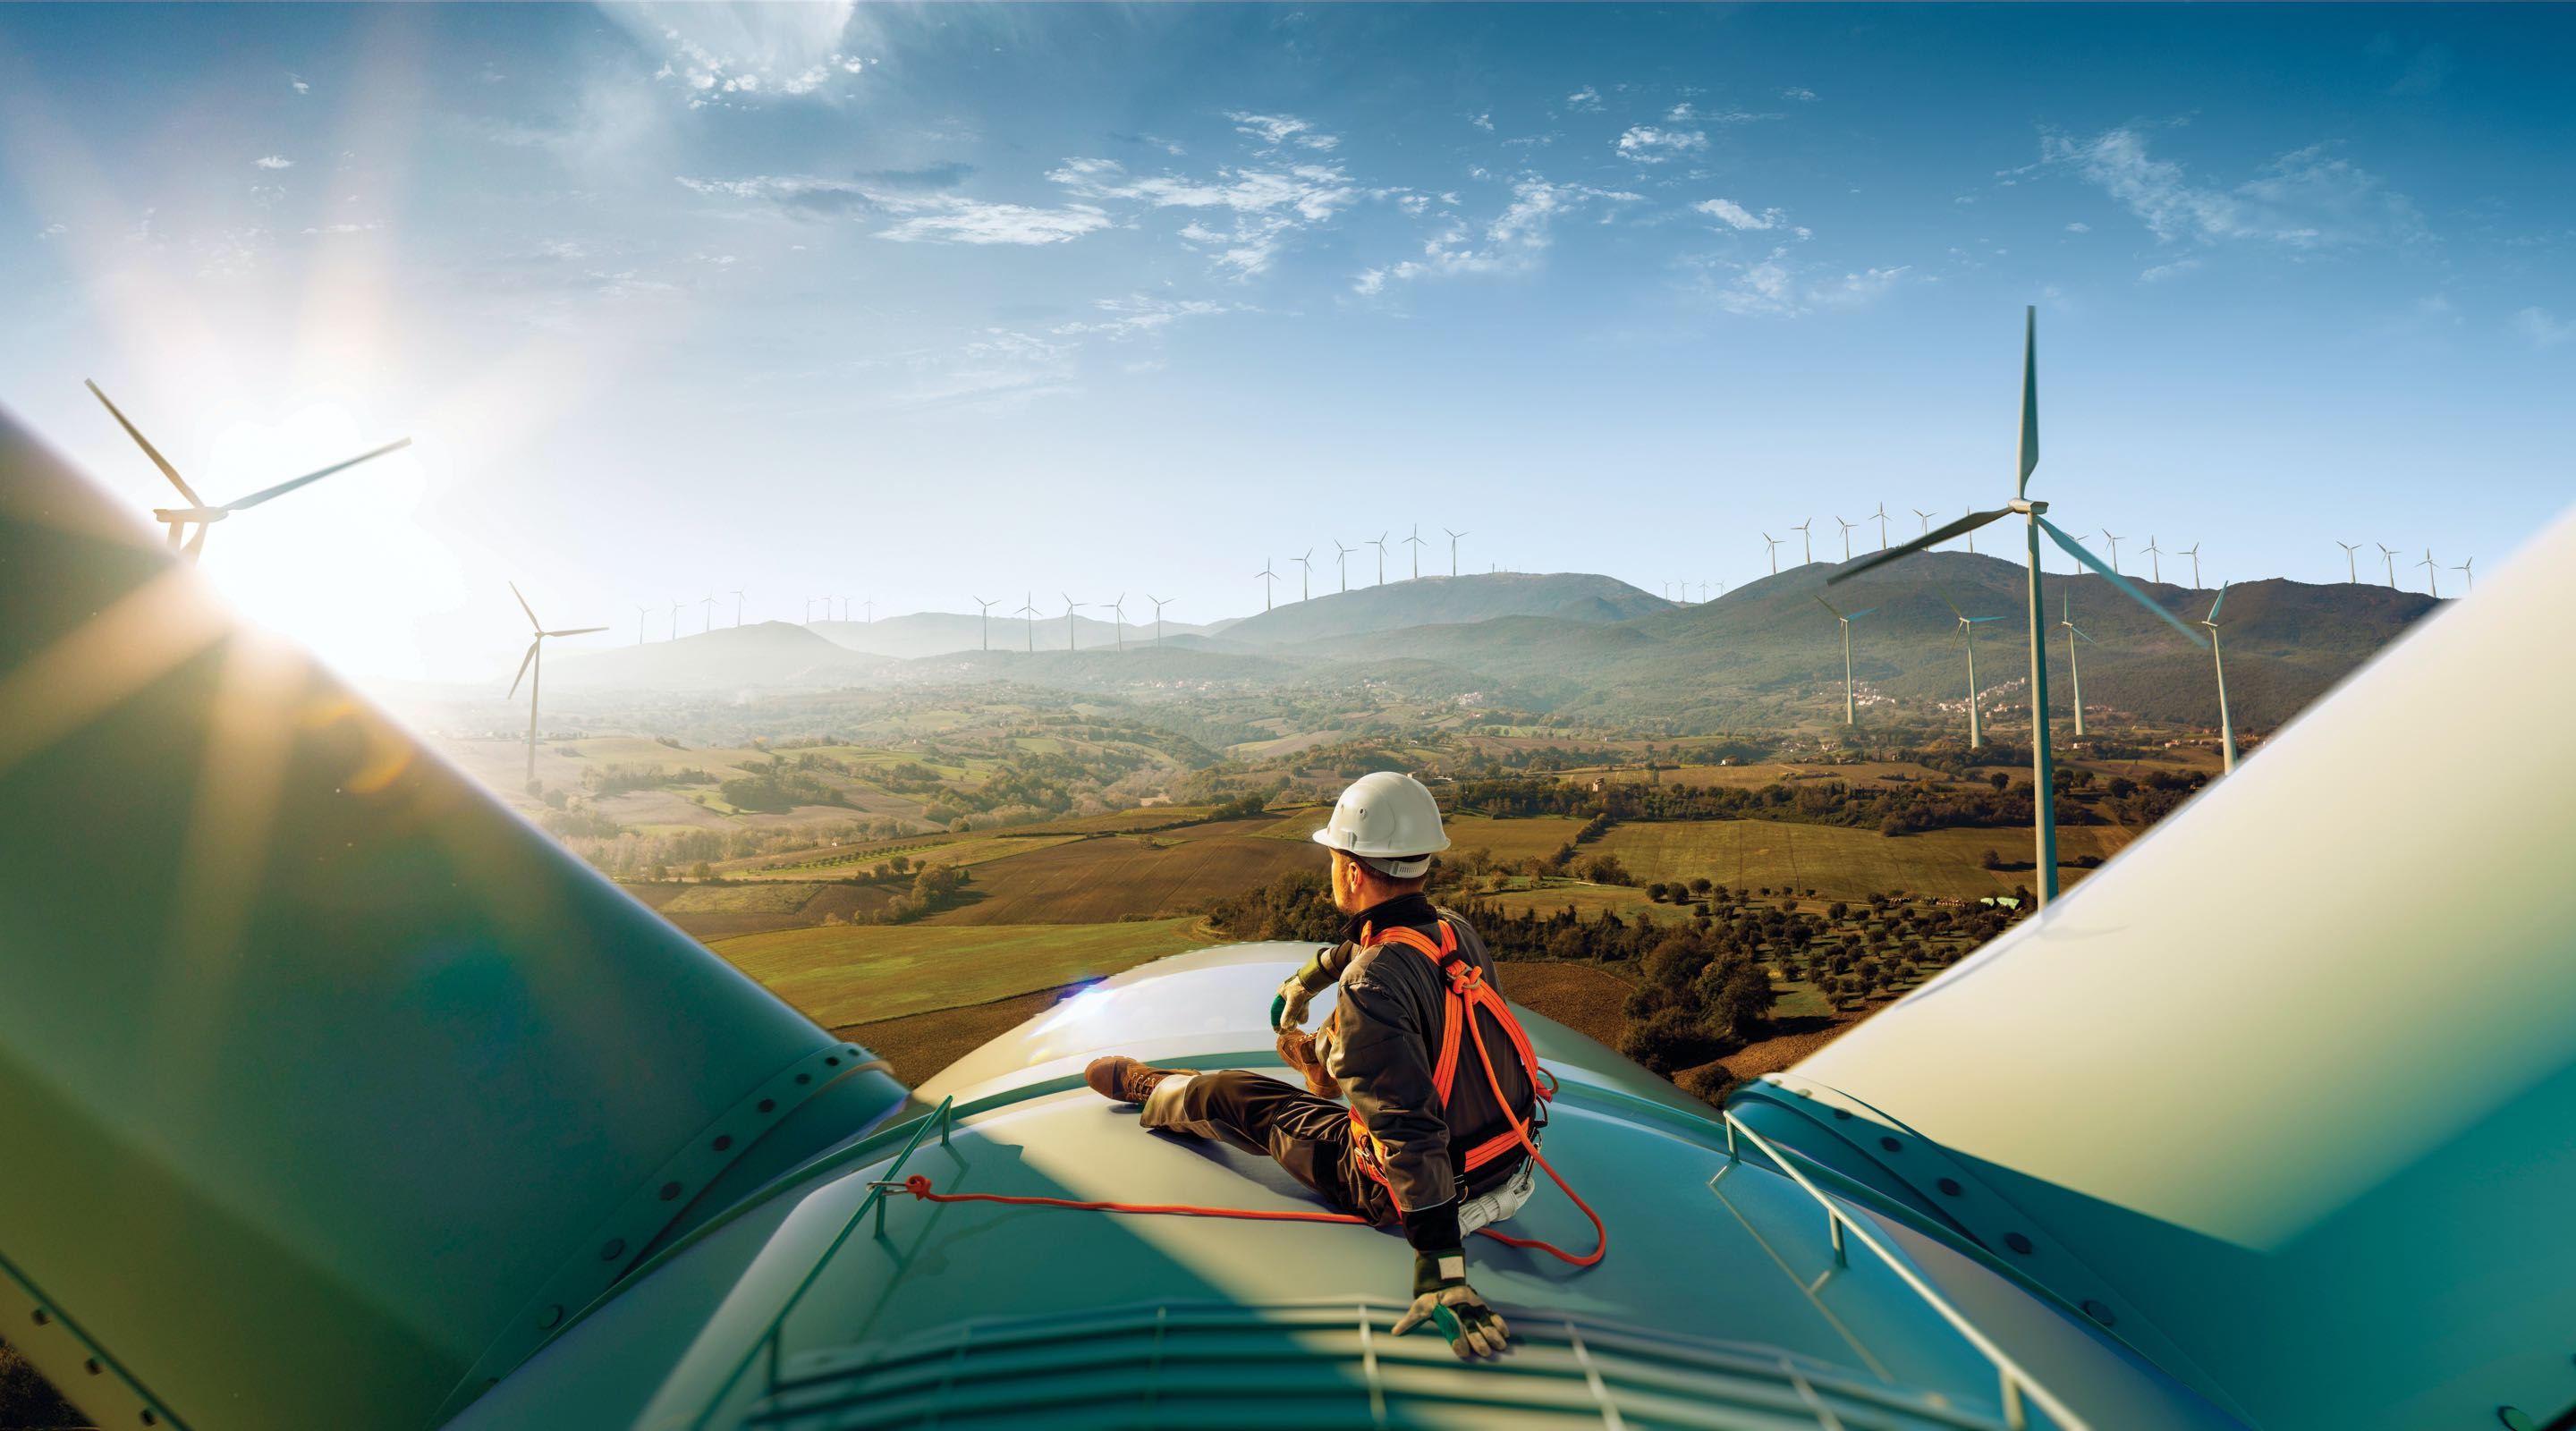 Technician sitting on wind turbine